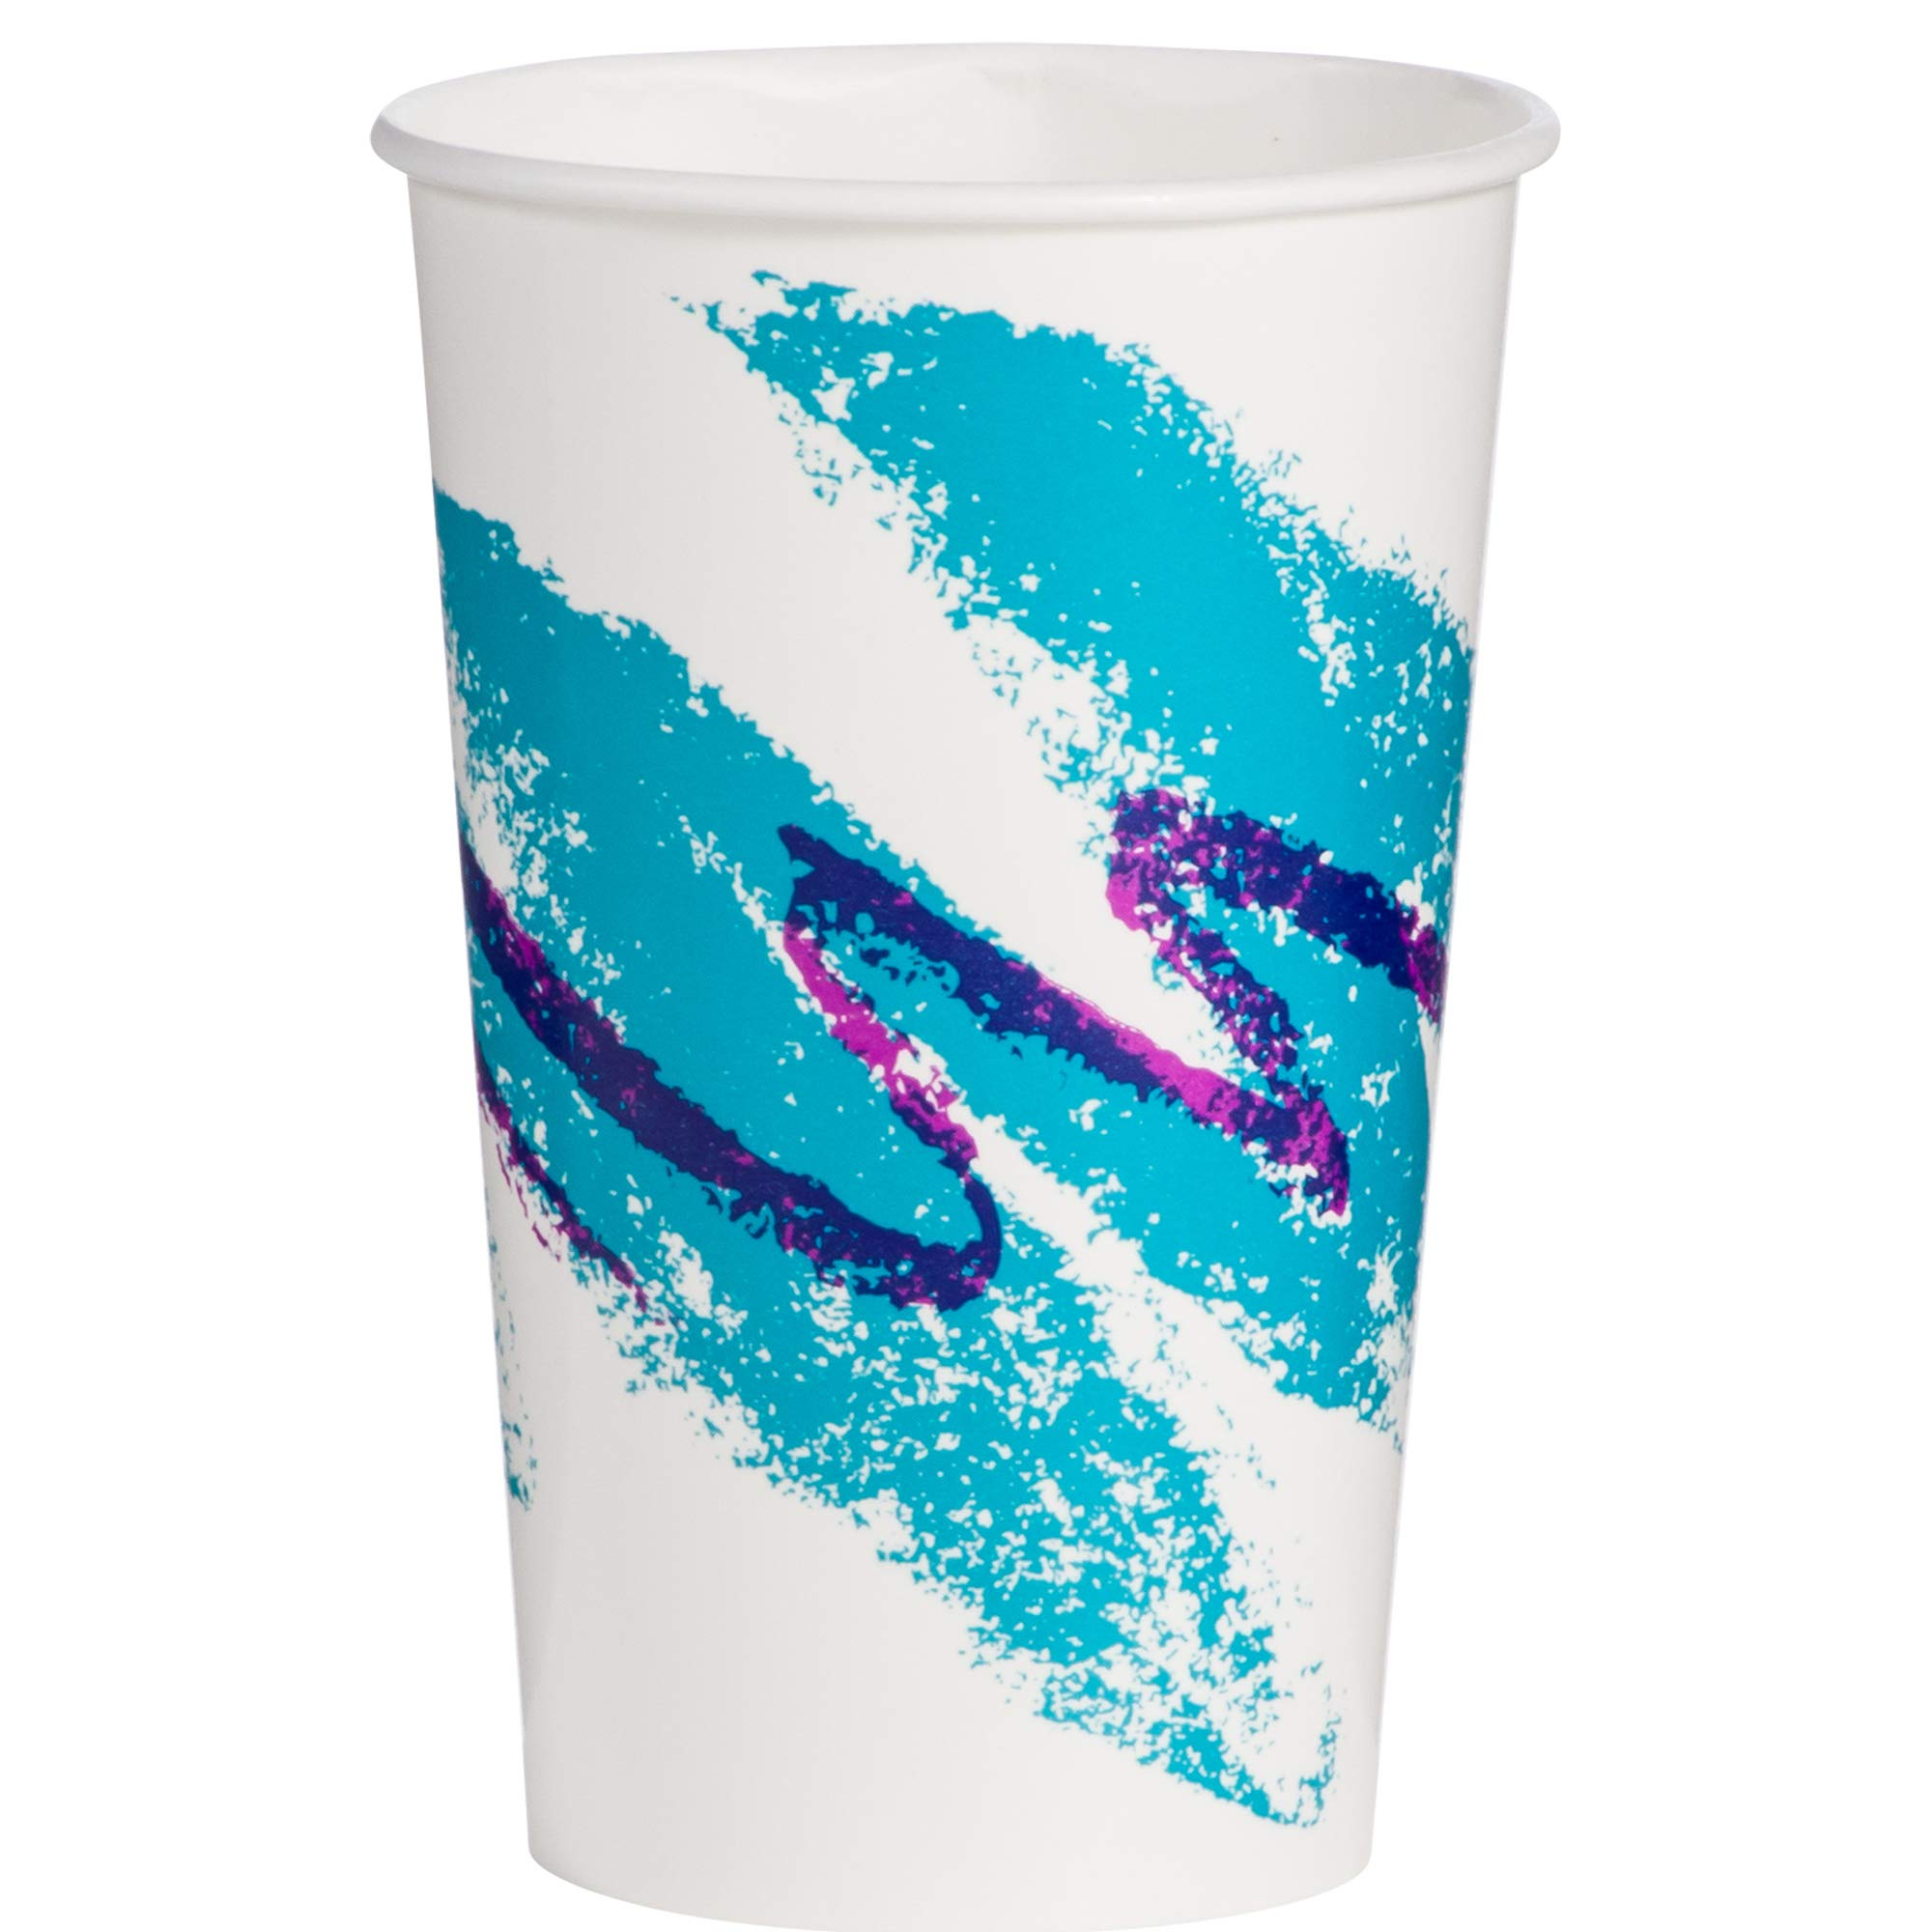 Solo RP16P-00055 16/18 oz Jazz DSP Paper Cold Cup (Case of 1000)